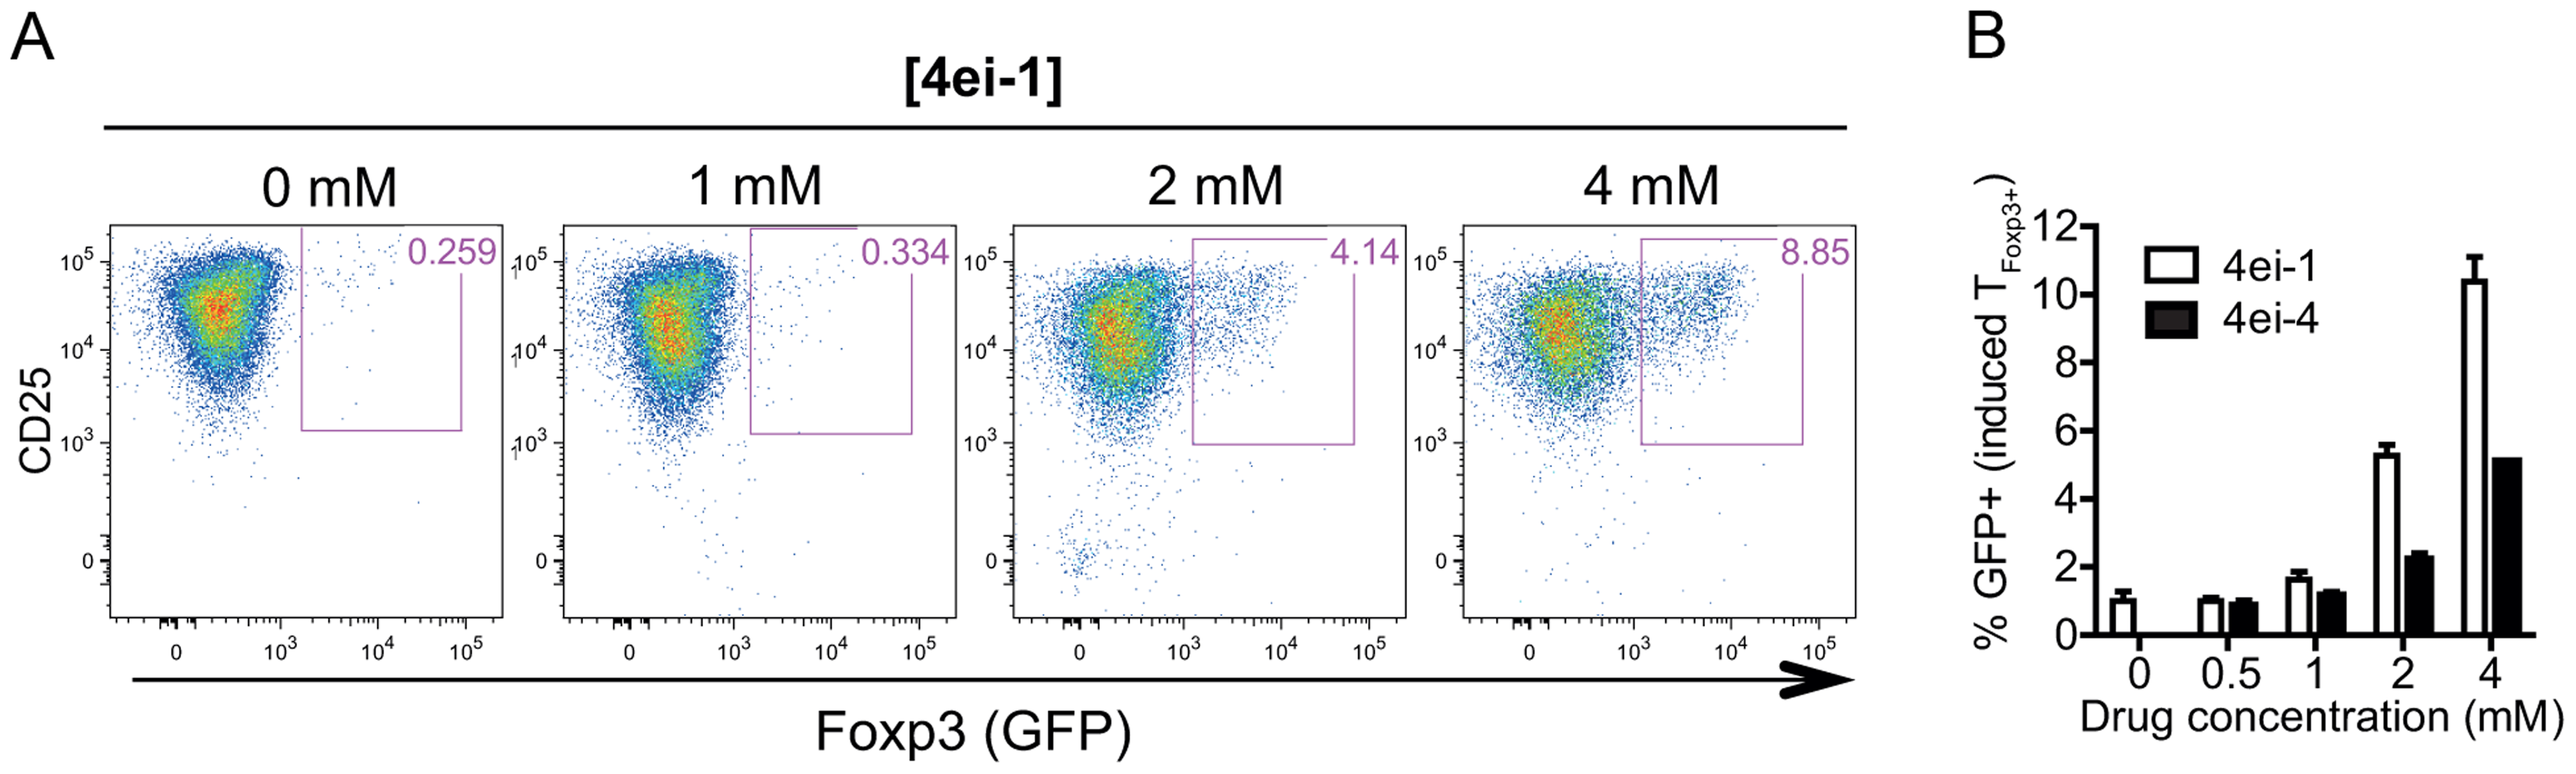 Inhibition of eIF4E activity results in spontaneous induction of Foxp3 expression in activated T<sub>Foxp3−</sub> cells.